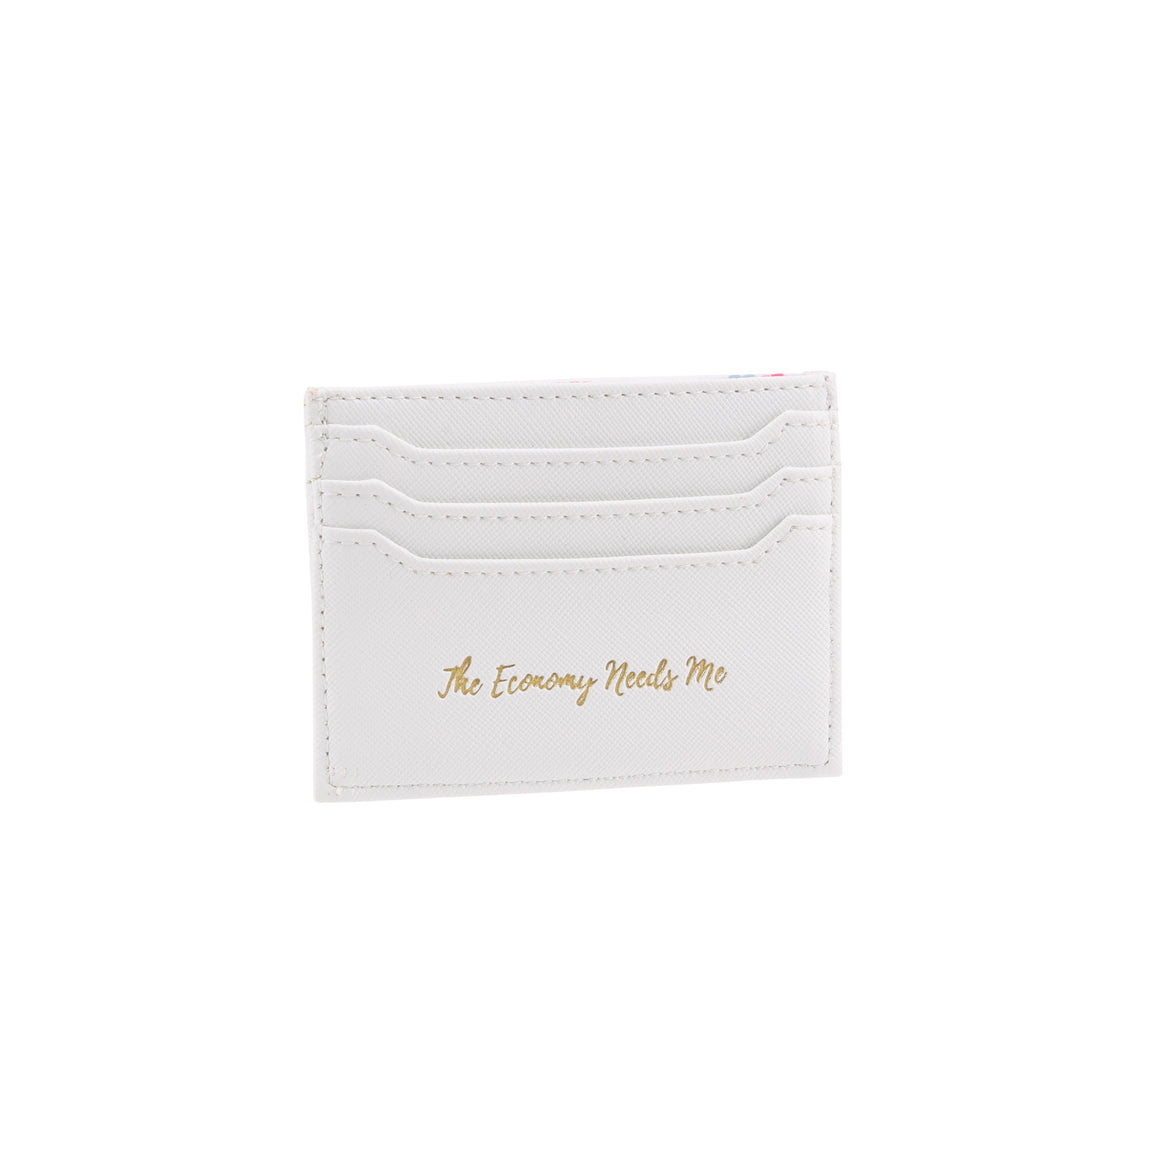 Willow & Rose 'The Economy Needs Me' White Card Holder - The Love Trees